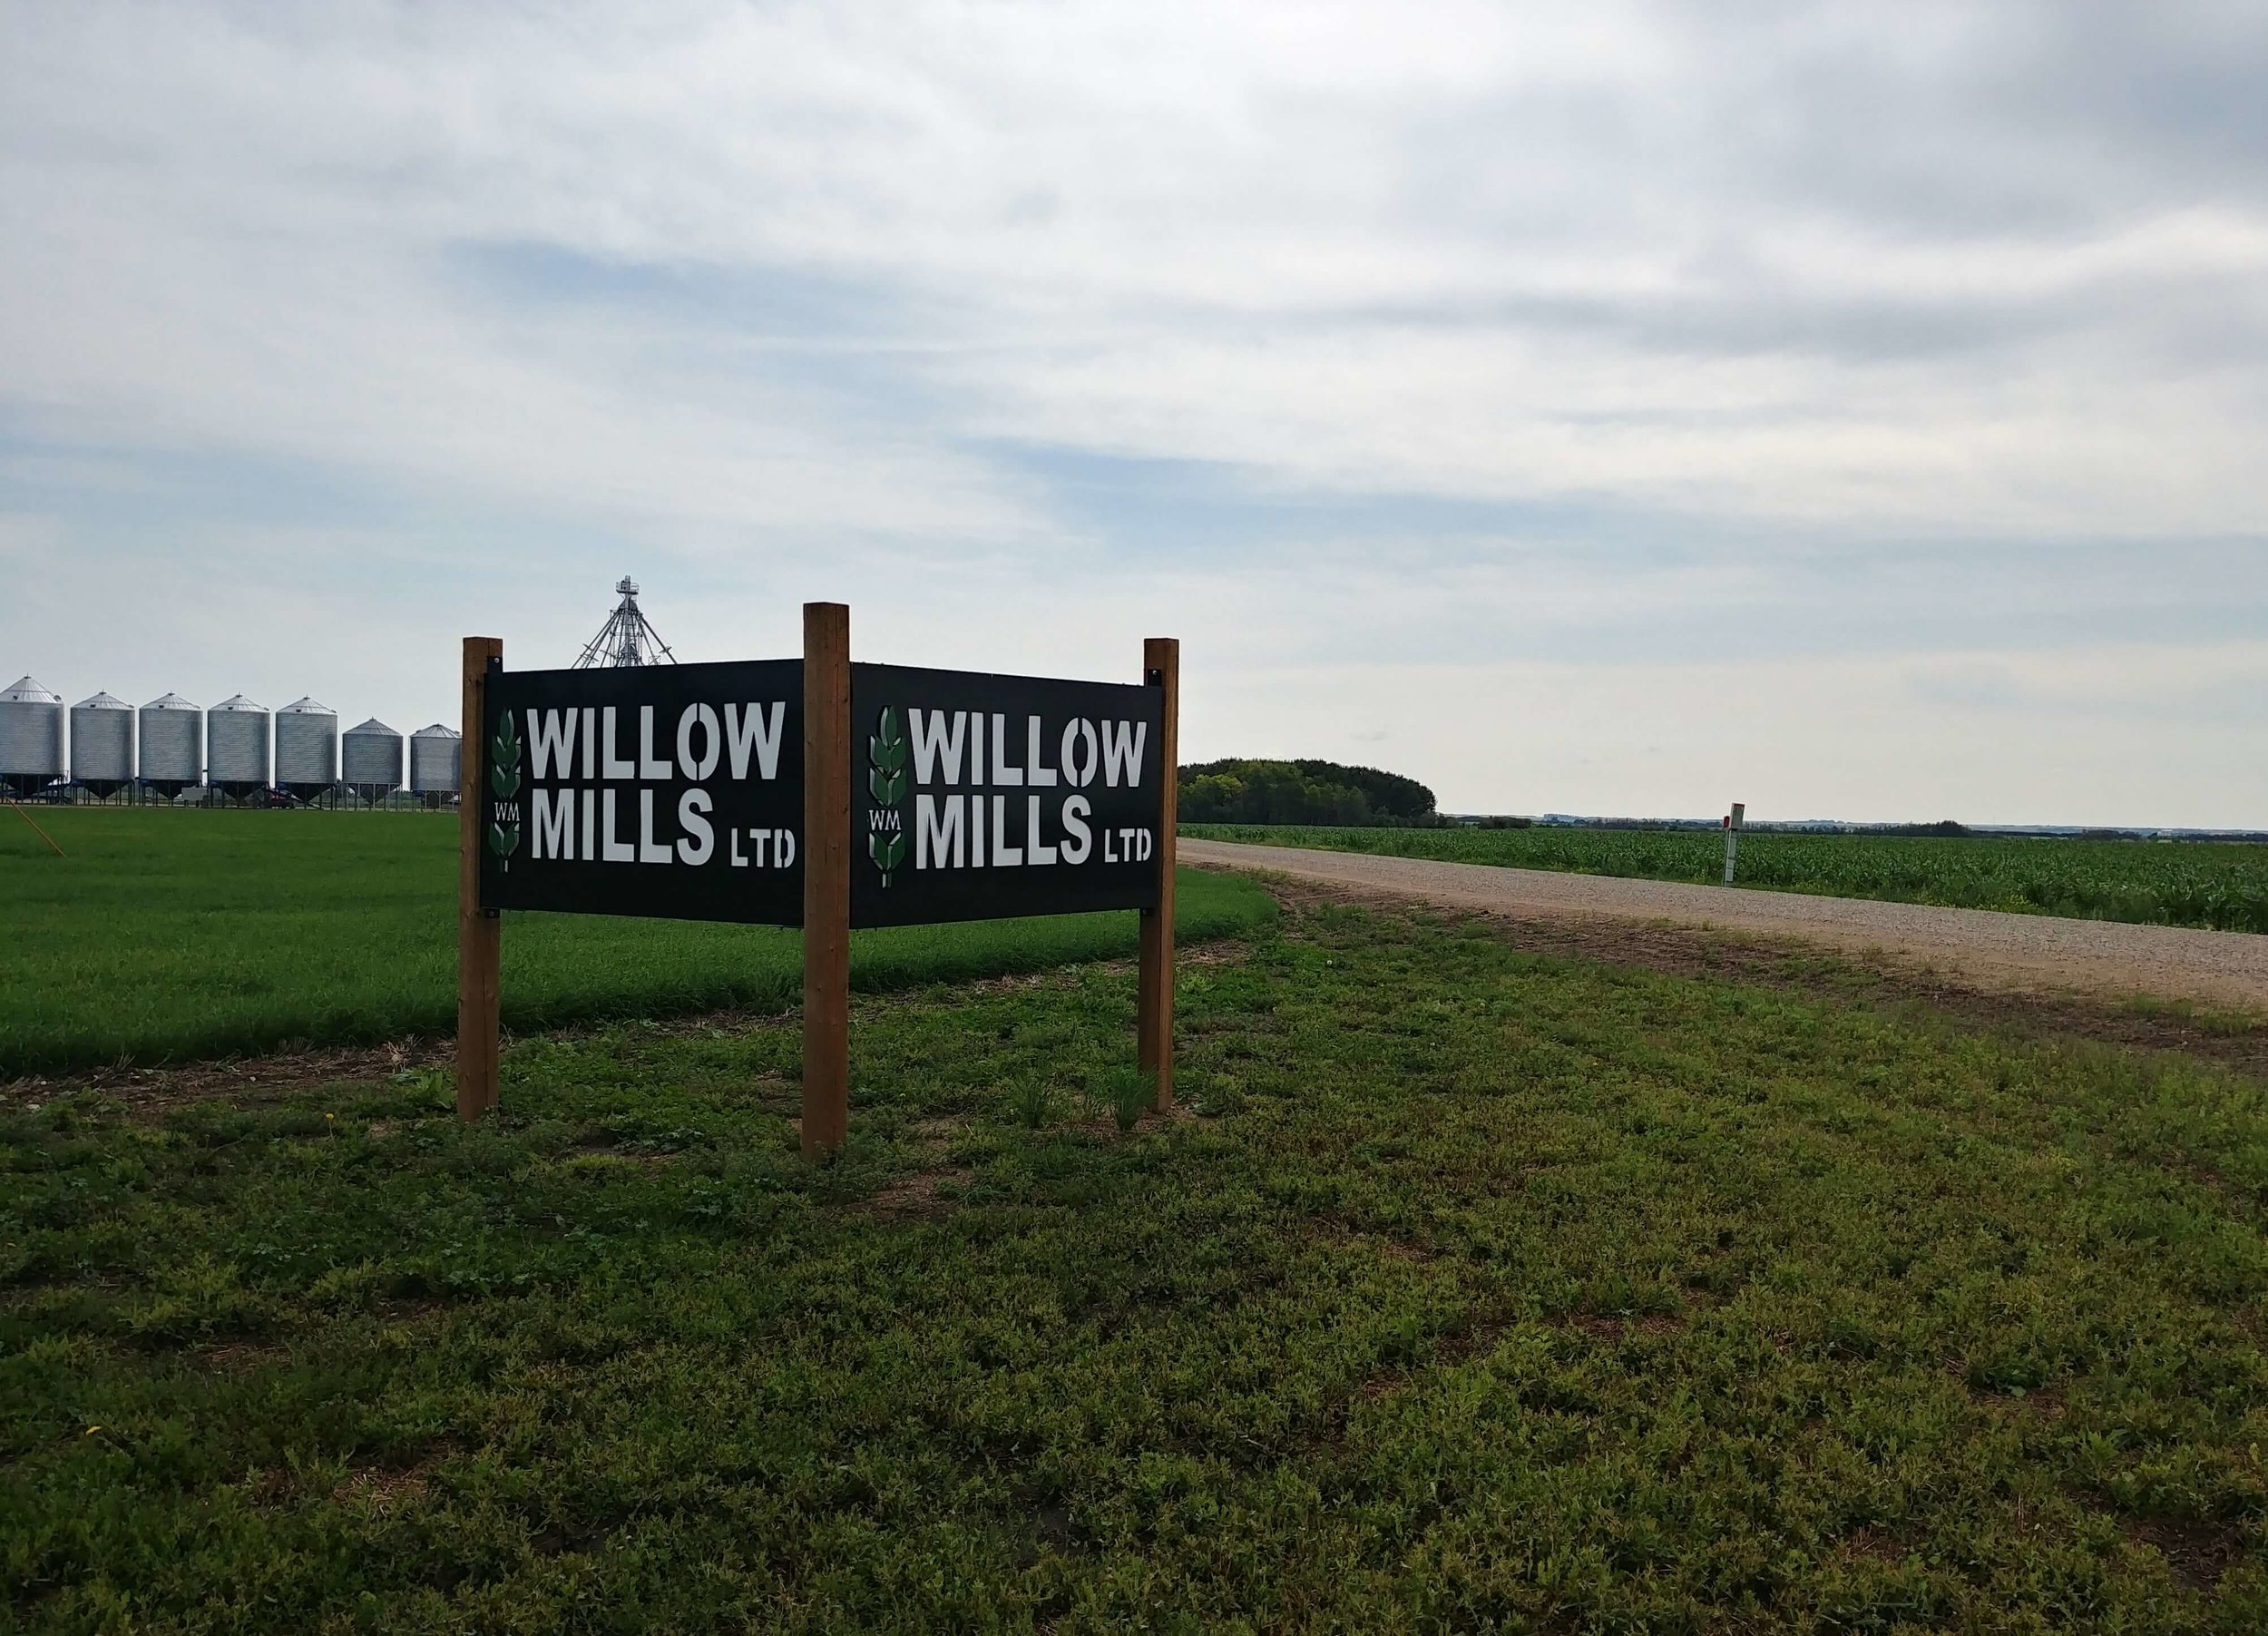 Willow Mills works together with independent industry-leading nutritionists to provide premium feed, support and service to our customers.